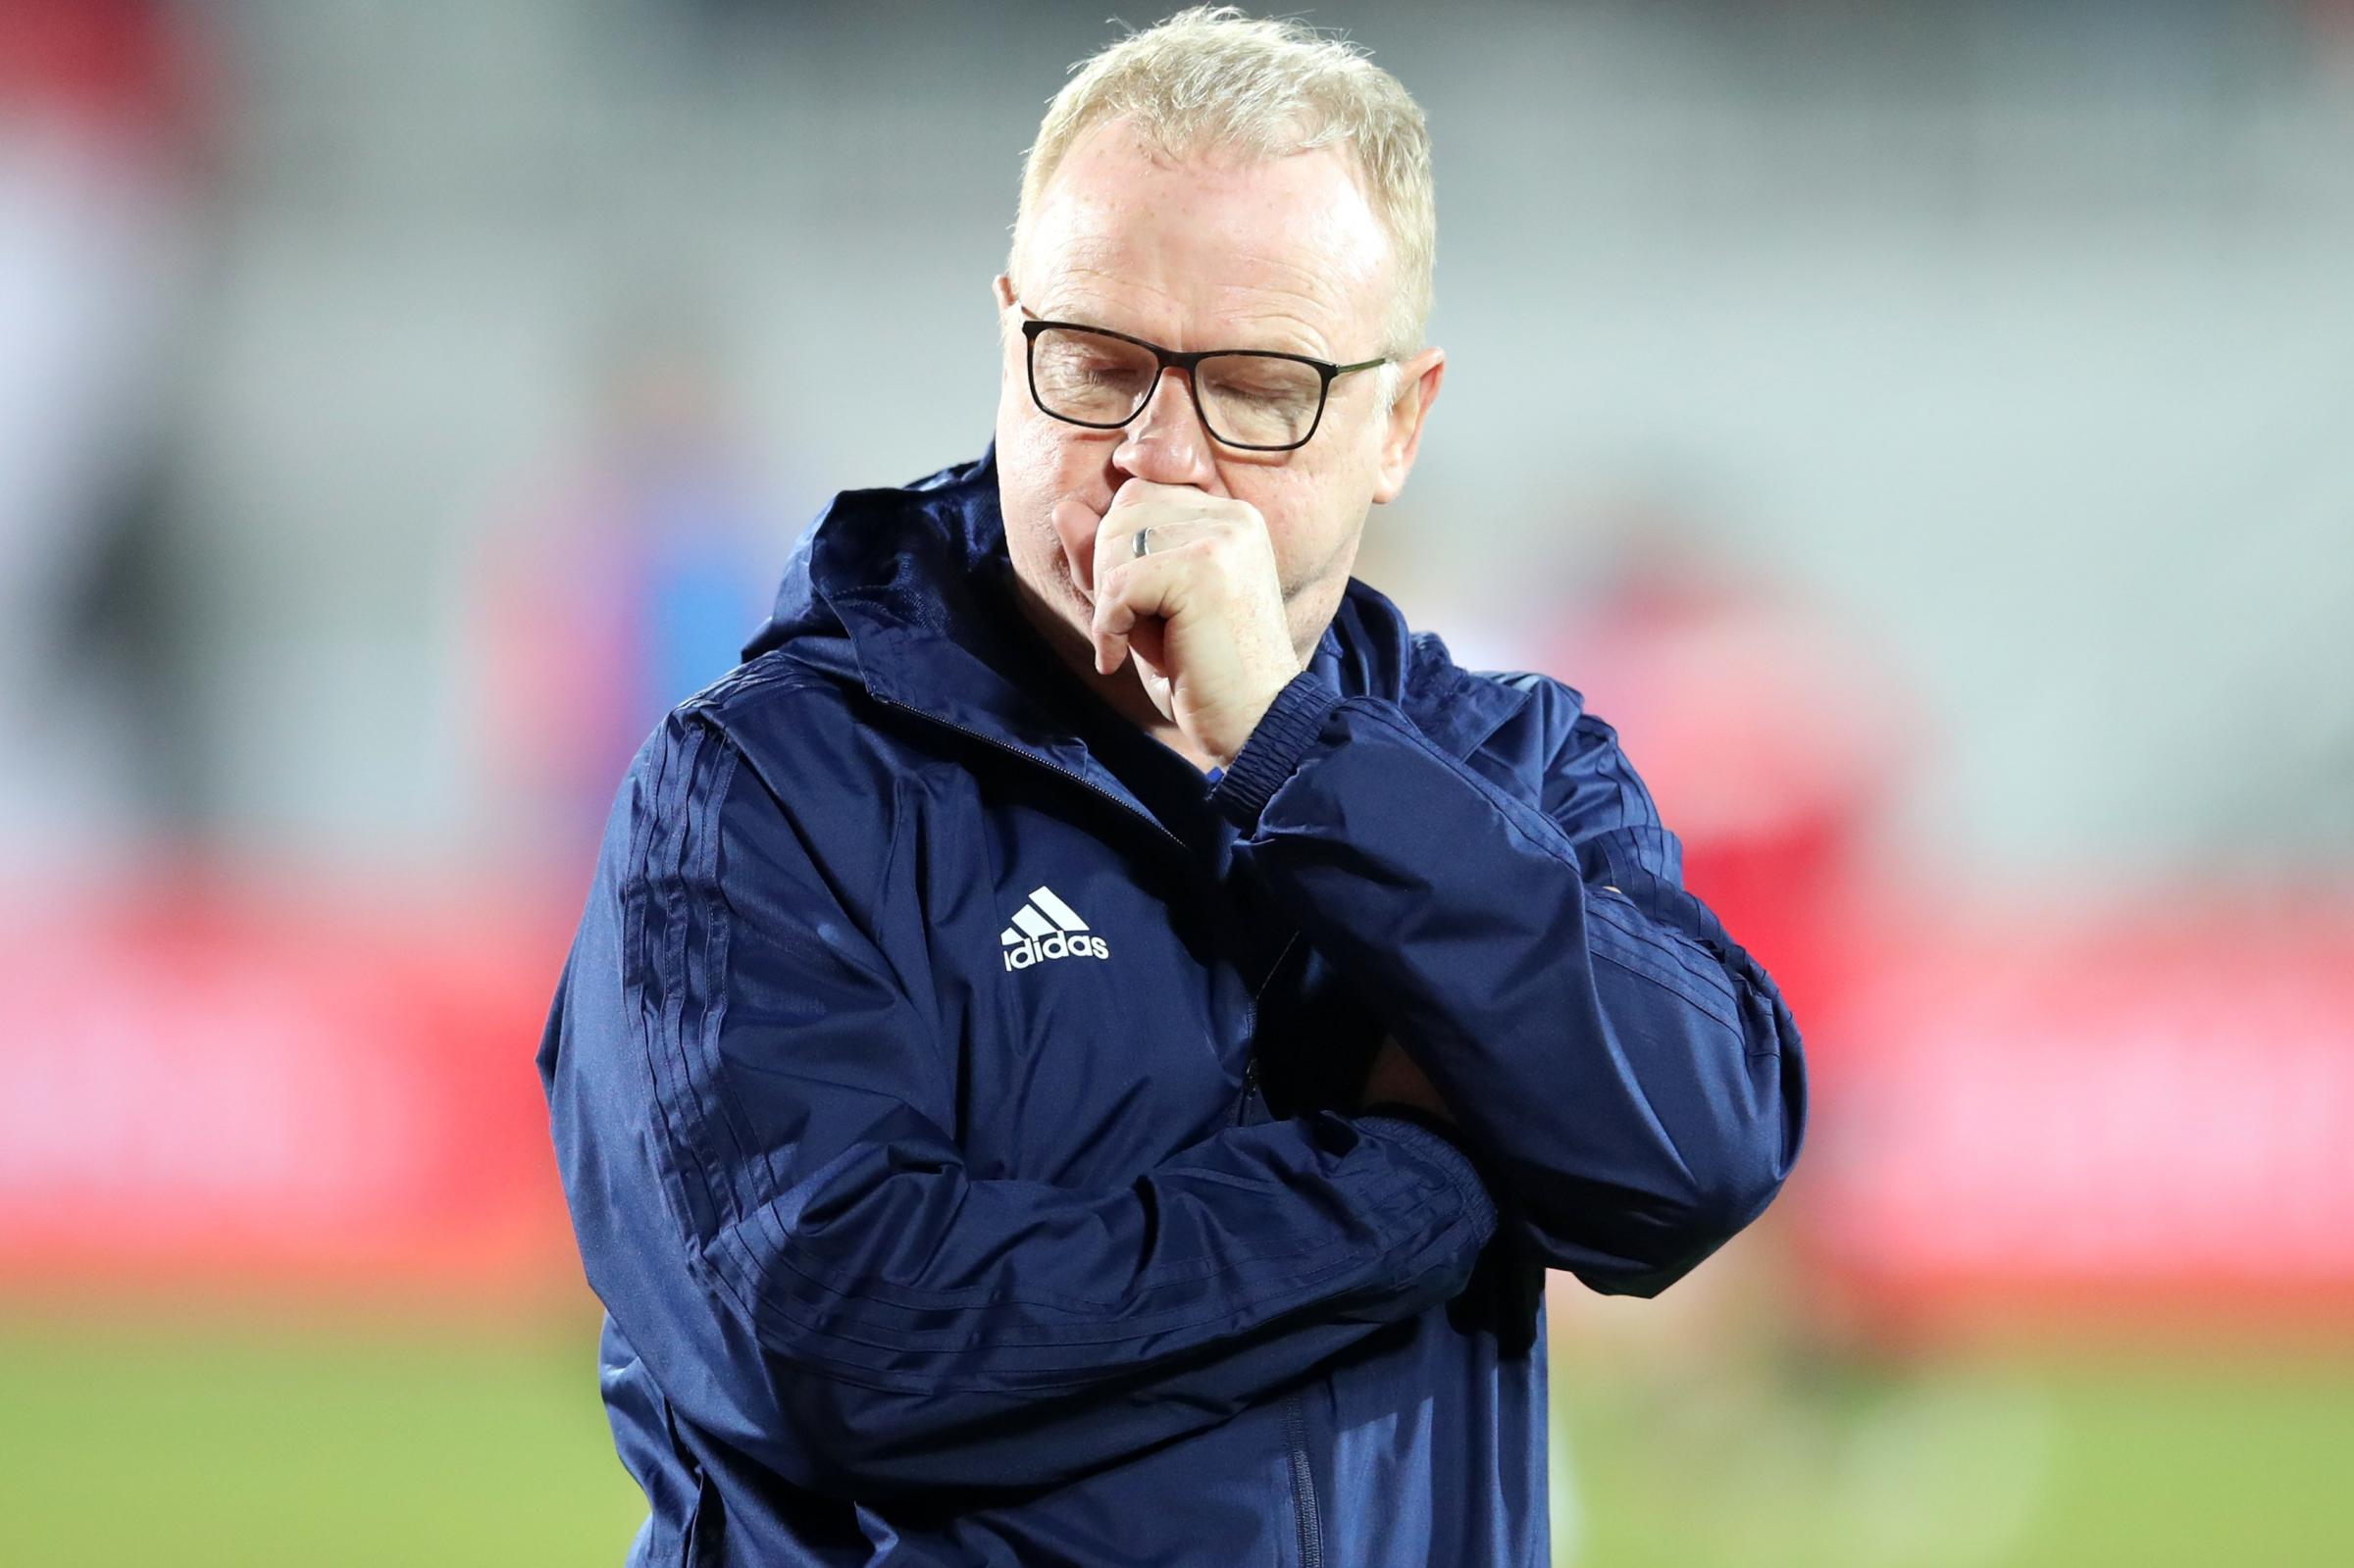 Alex McLeish has been sacked by Scotland